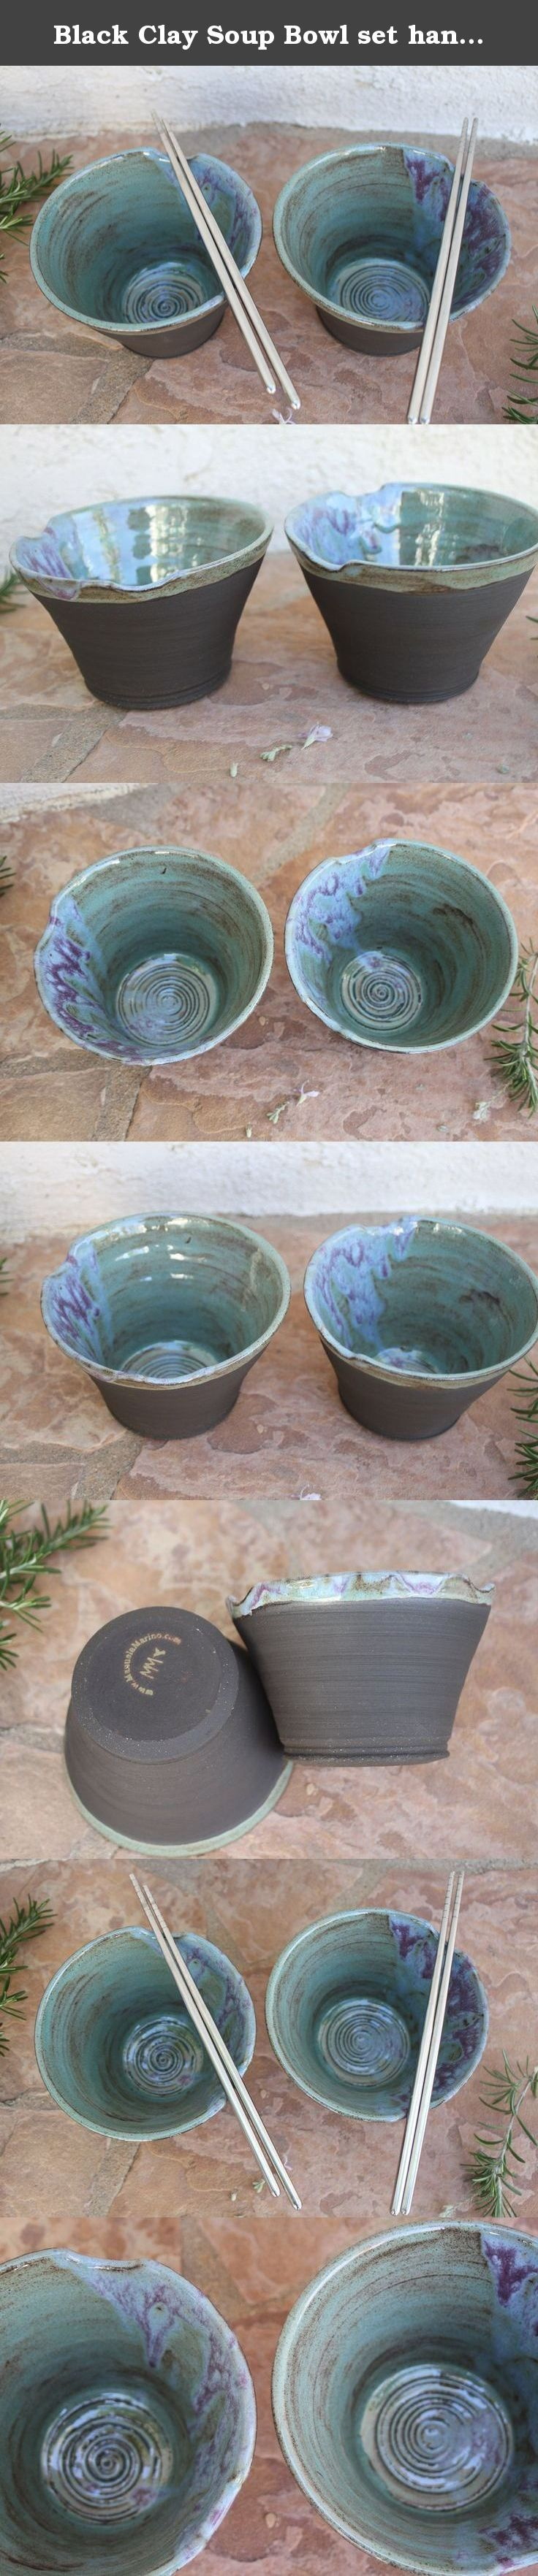 """Black Clay Soup Bowl set handmade ceramic ramen dish rice bowls rustic modern kitchen pottery. These bowls are ideal for rice or soup dishes. Cutouts make it easy to store your chopsticks. Seafoam glaze with purple and blue drip effects make this a one-of-a-kind gift for a couple. Chopsticks not included. About 4"""" (10.1cm) high and 5.5"""" (14cm) wide on top. The outside is only partially glazed to show off the beautiful dark clay, providing a nice contrast to the smooth interior. Food..."""